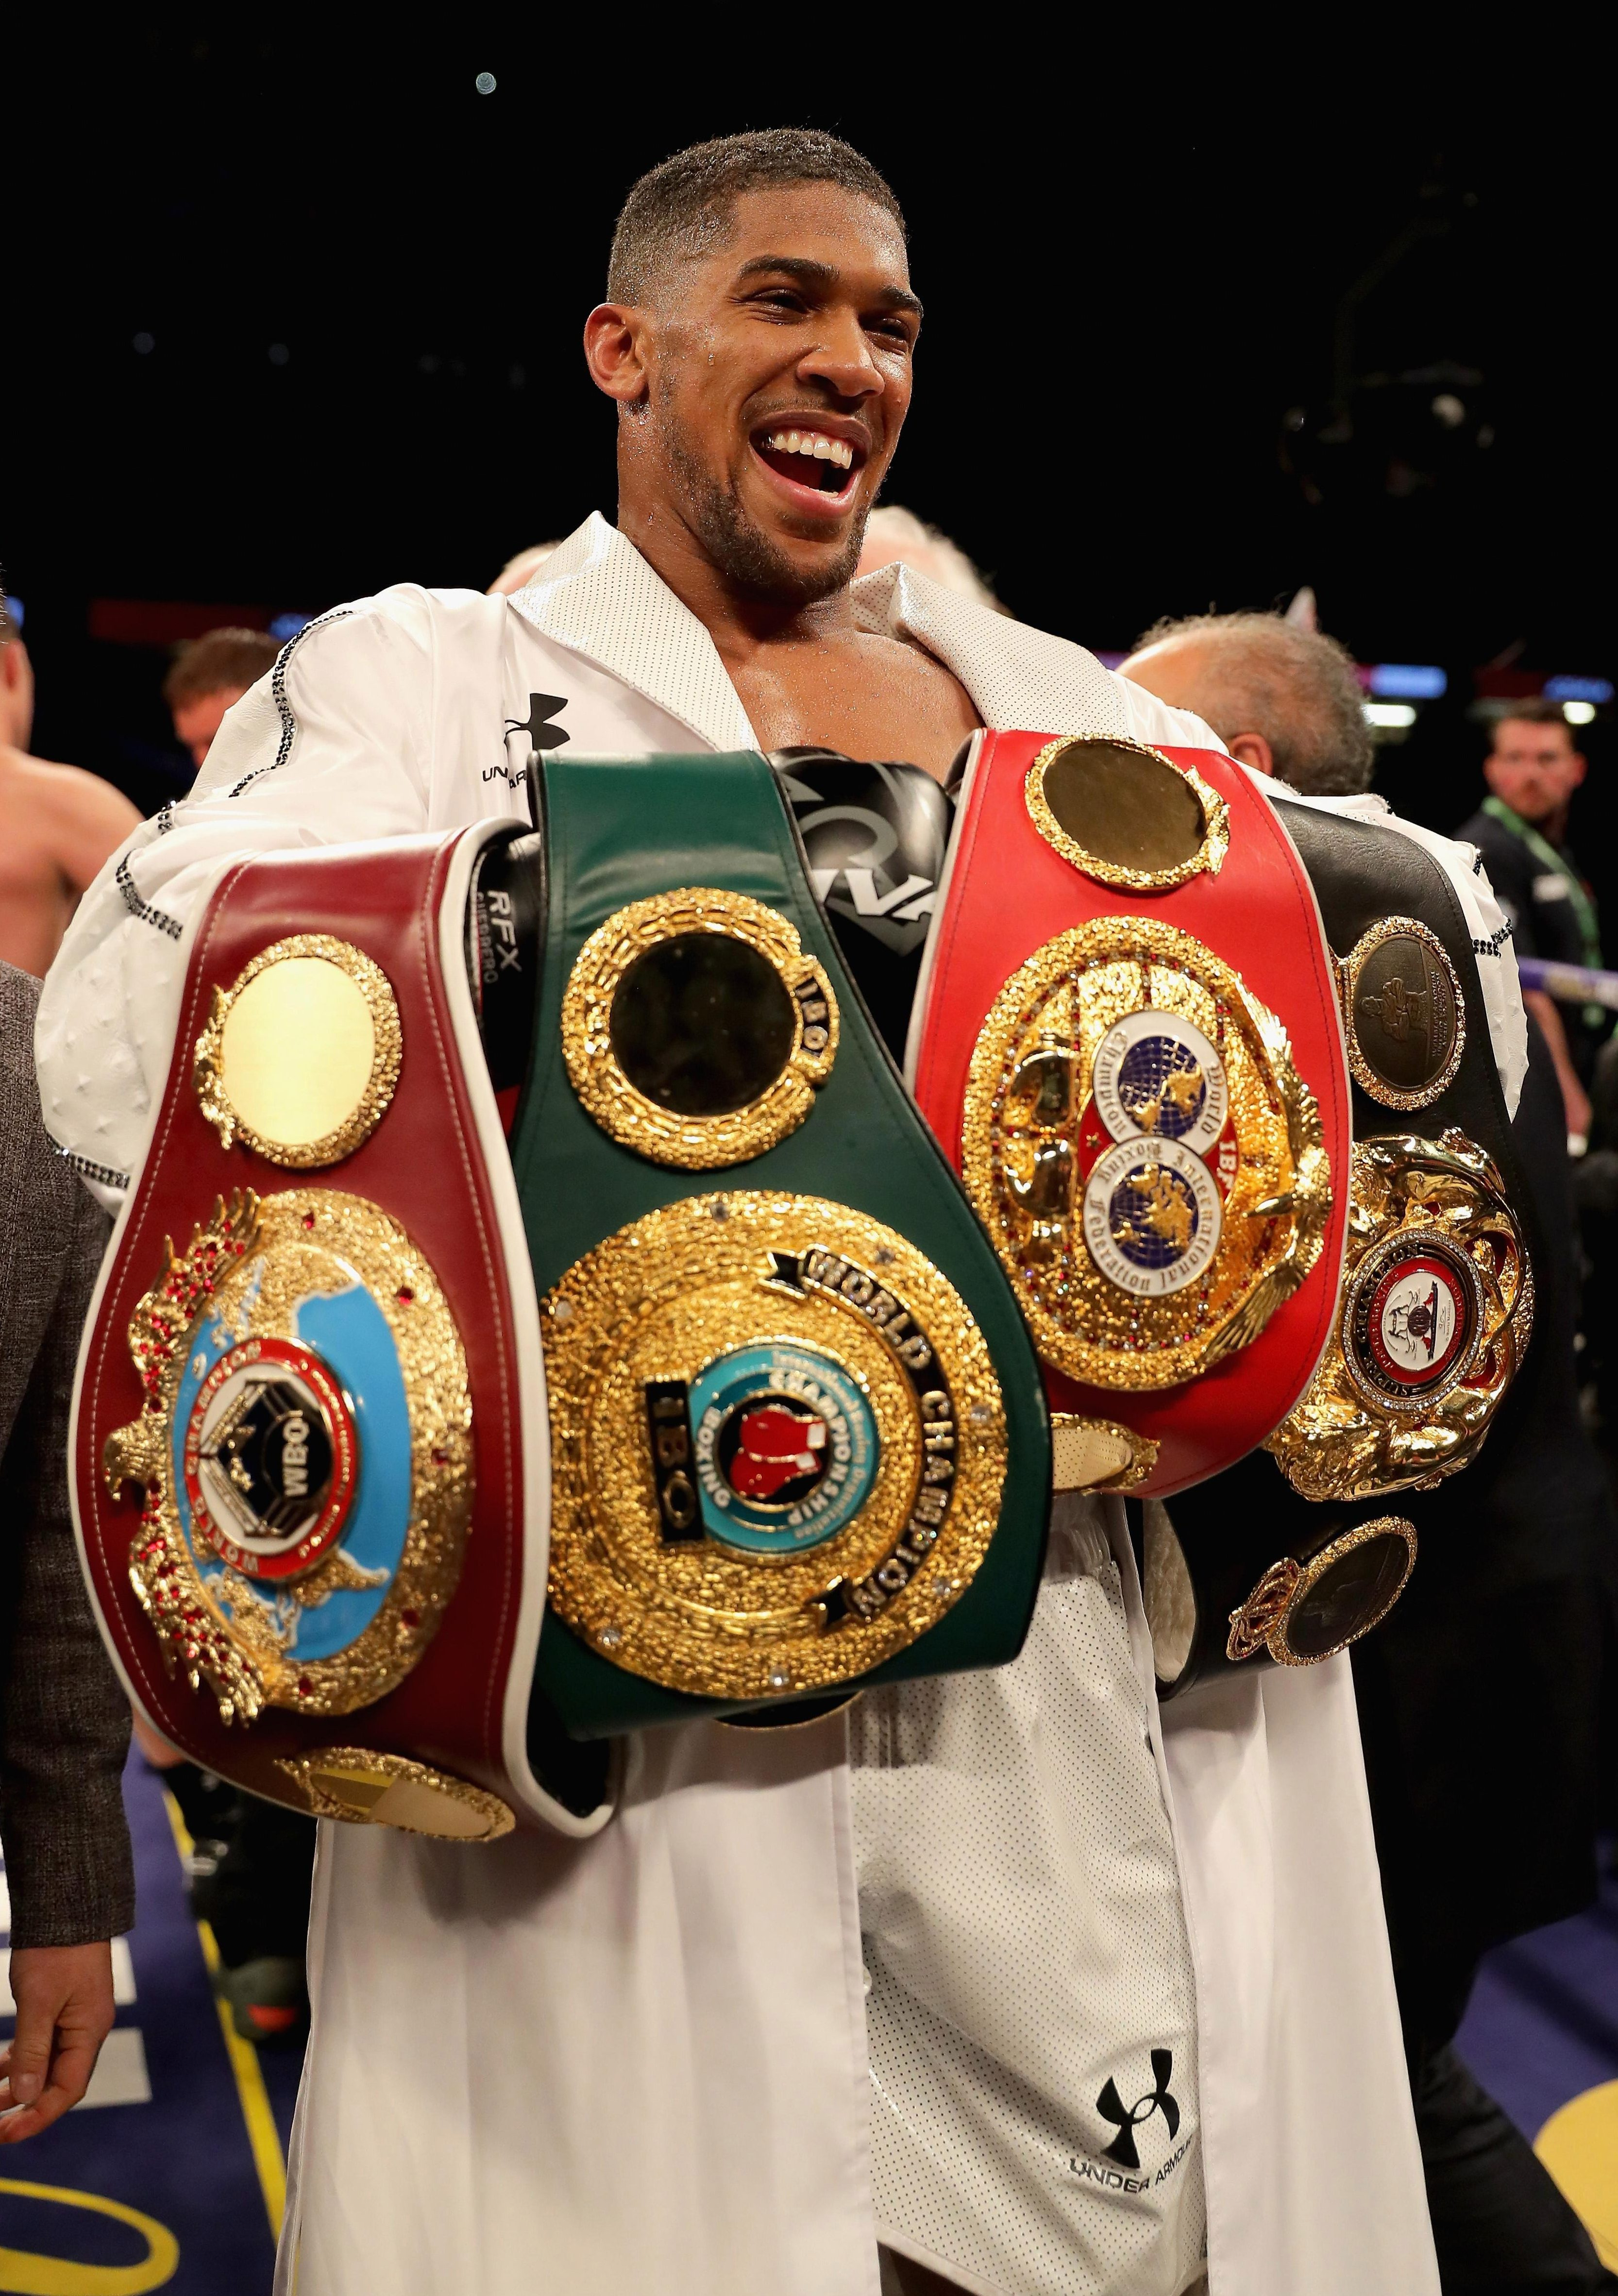 Anthony Joshua has promised to knock Deontay Wilder out if they ever fight